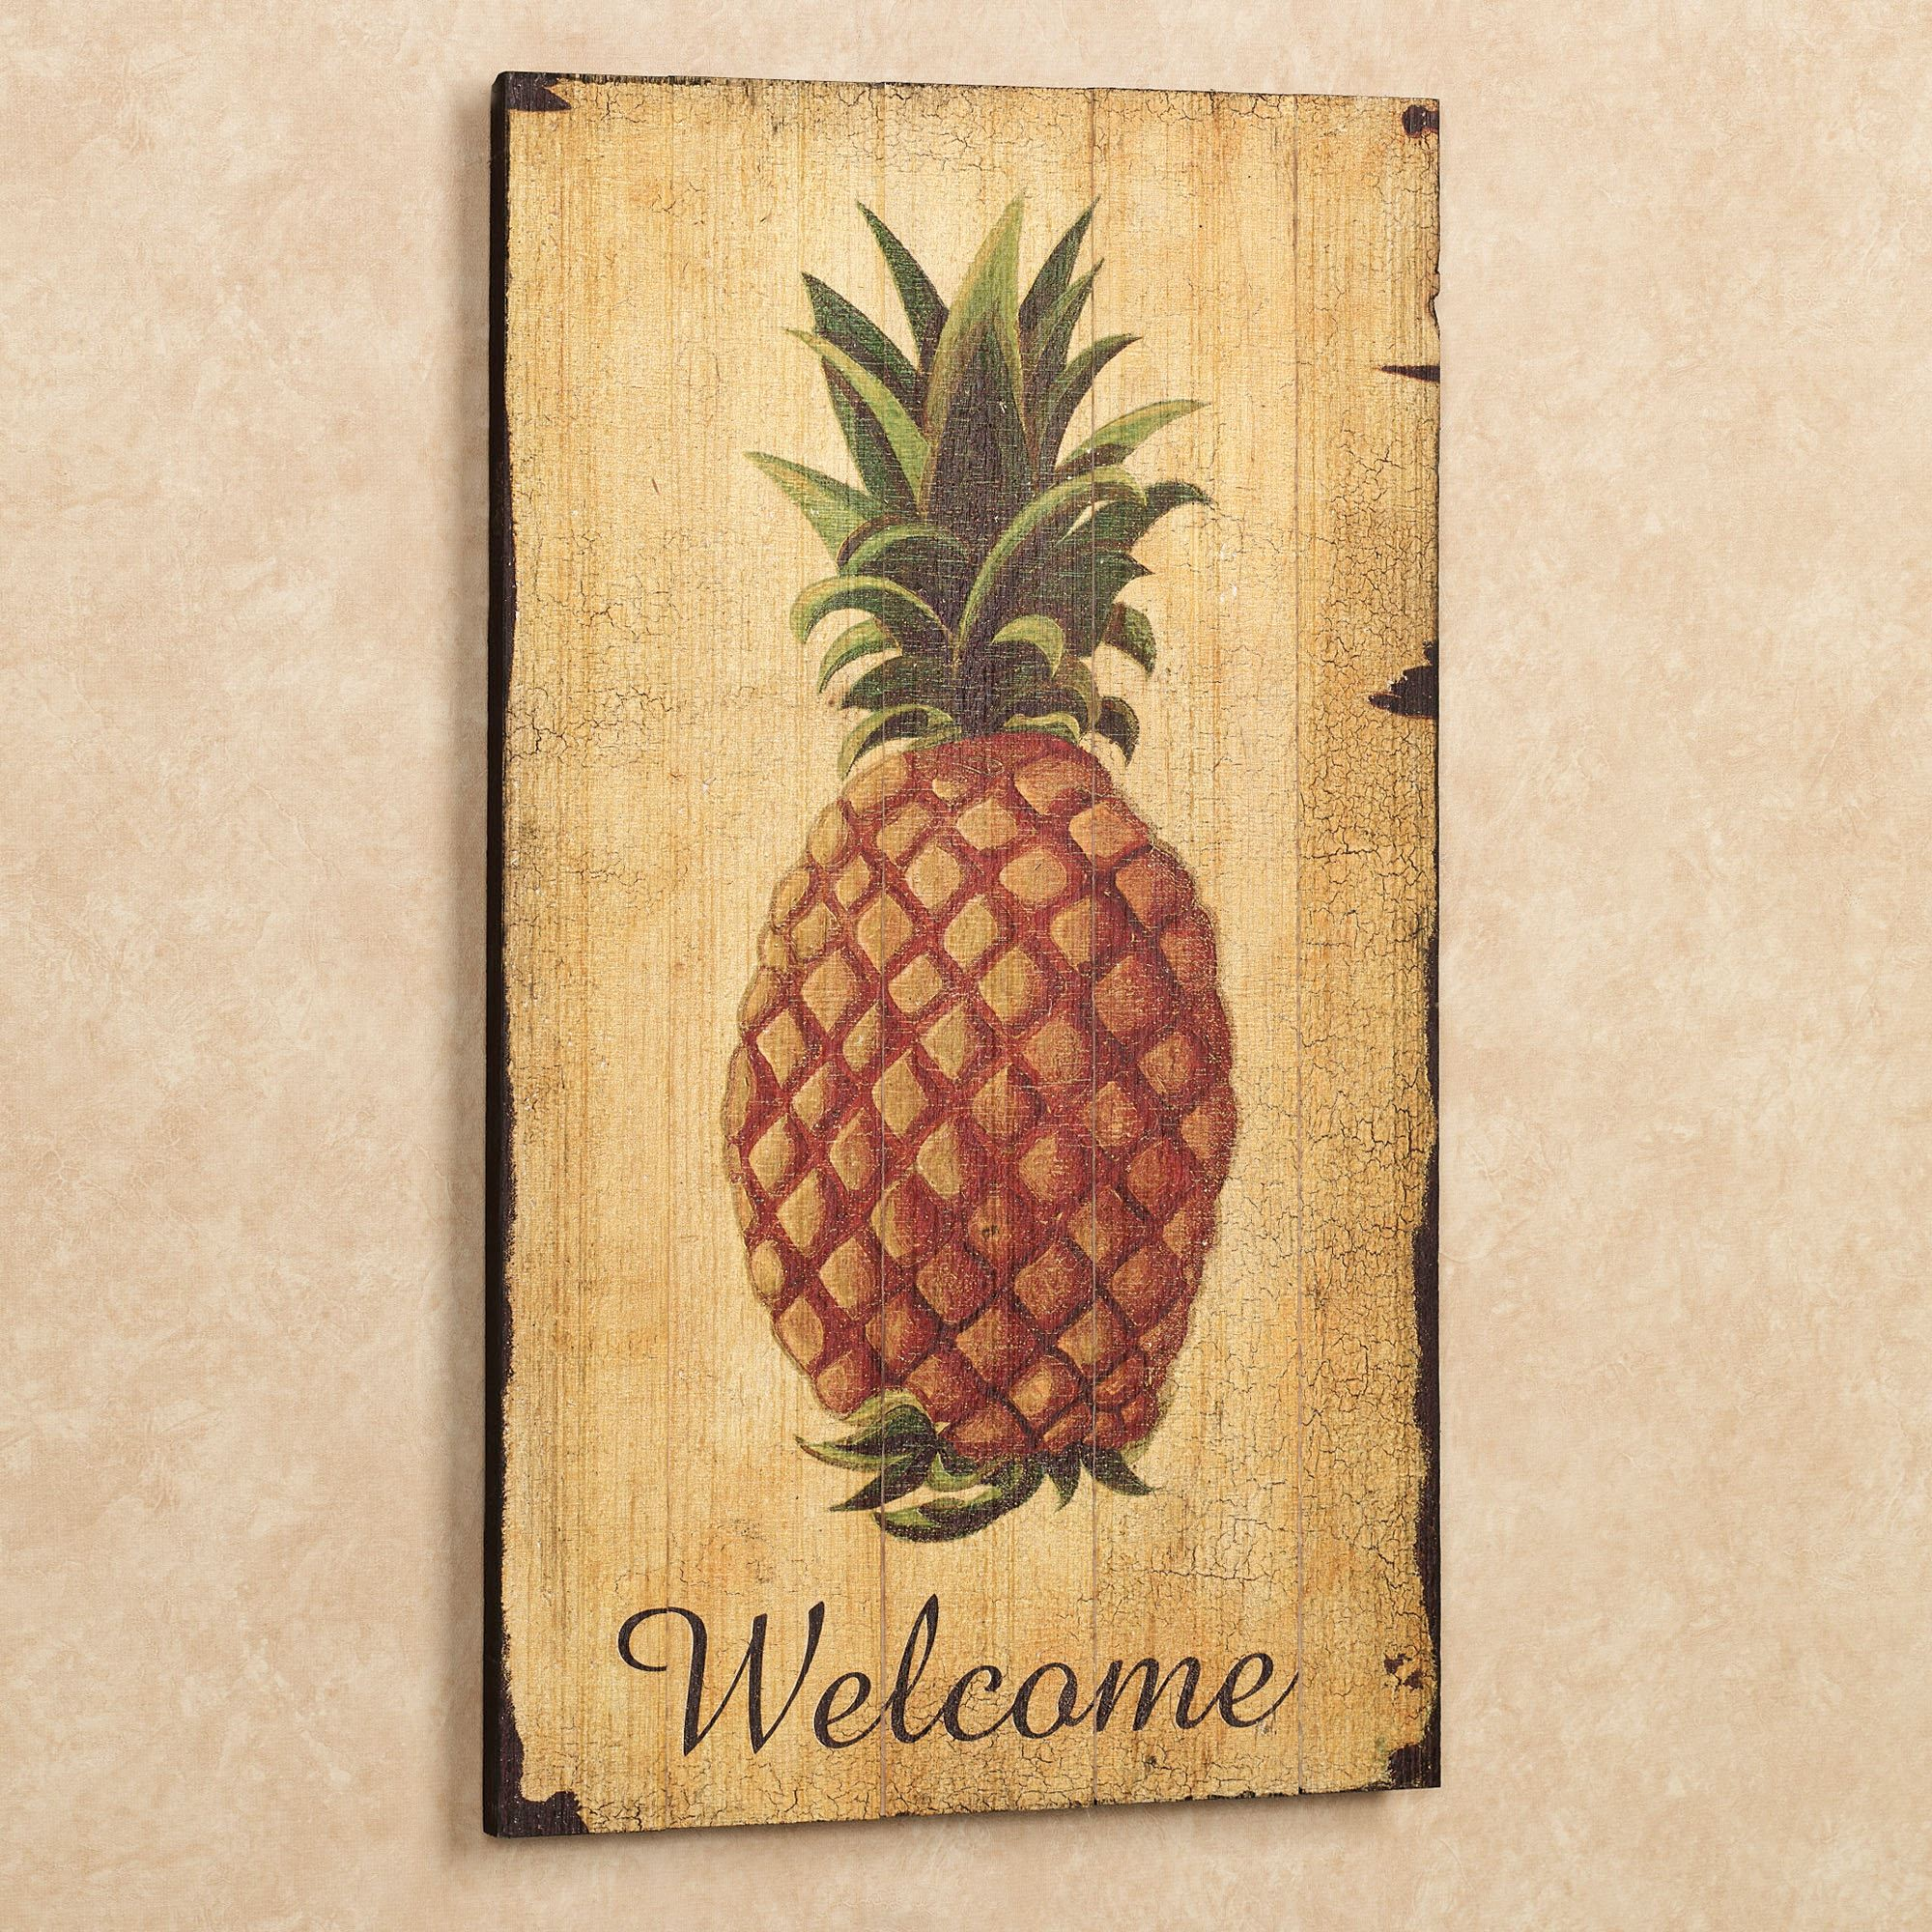 Pineapple Vintage Welcome Sign Wall Art